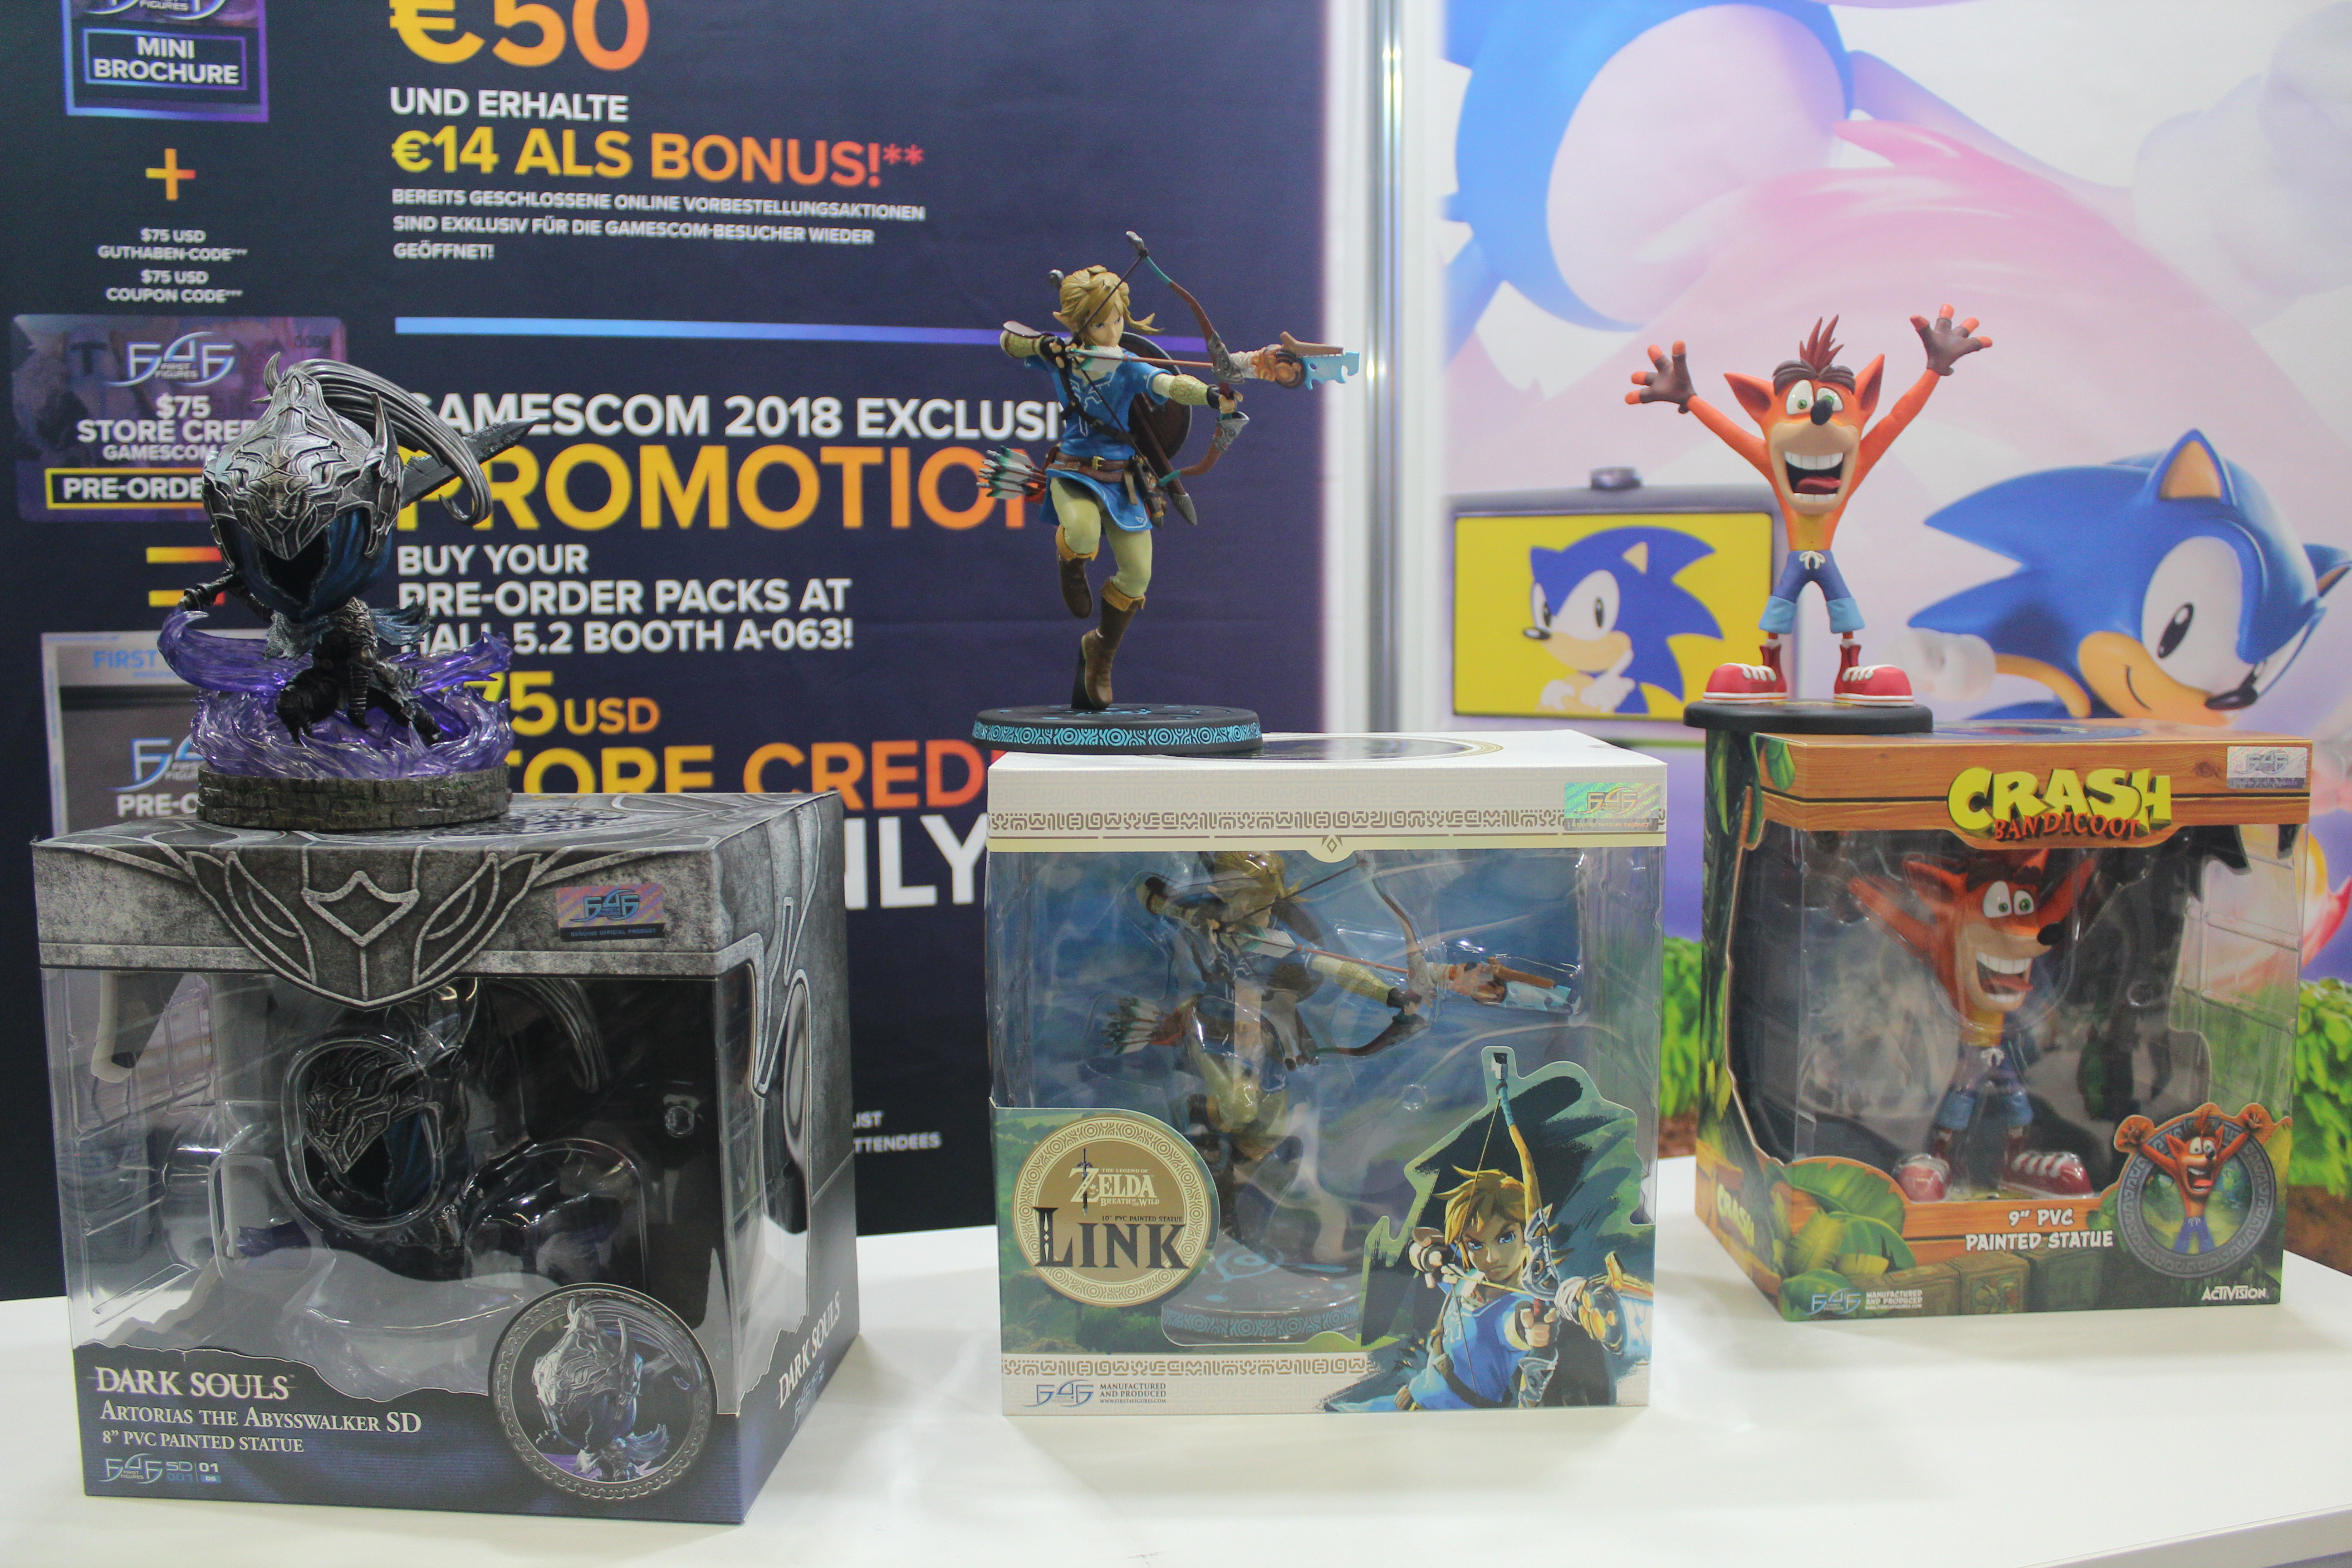 Gamescom 2018 in-stock items